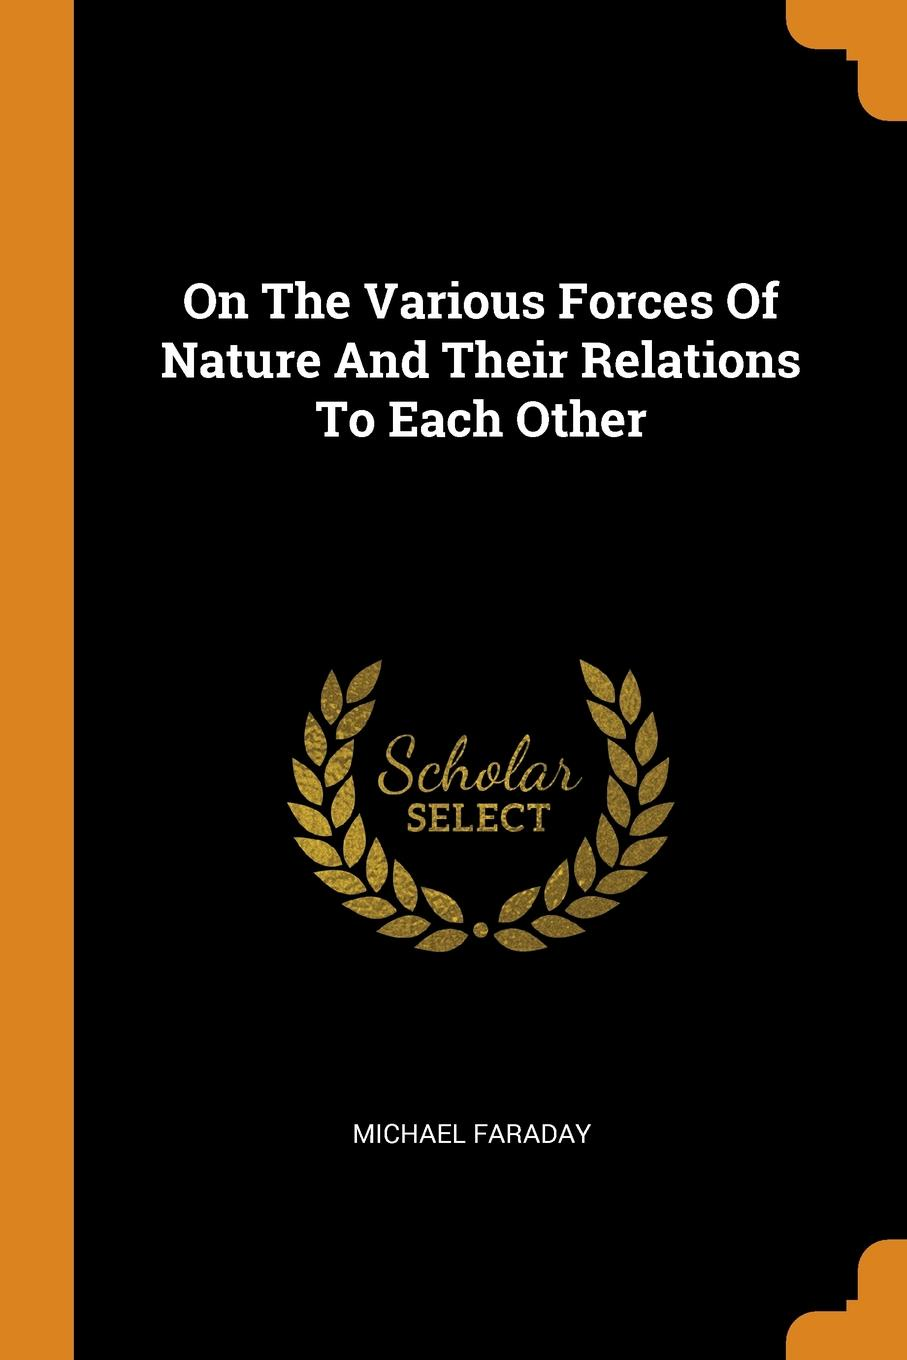 Michael Faraday On The Various Forces Of Nature And Their Relations To Each Other faraday michael on the various forces of nature and their relations to each other